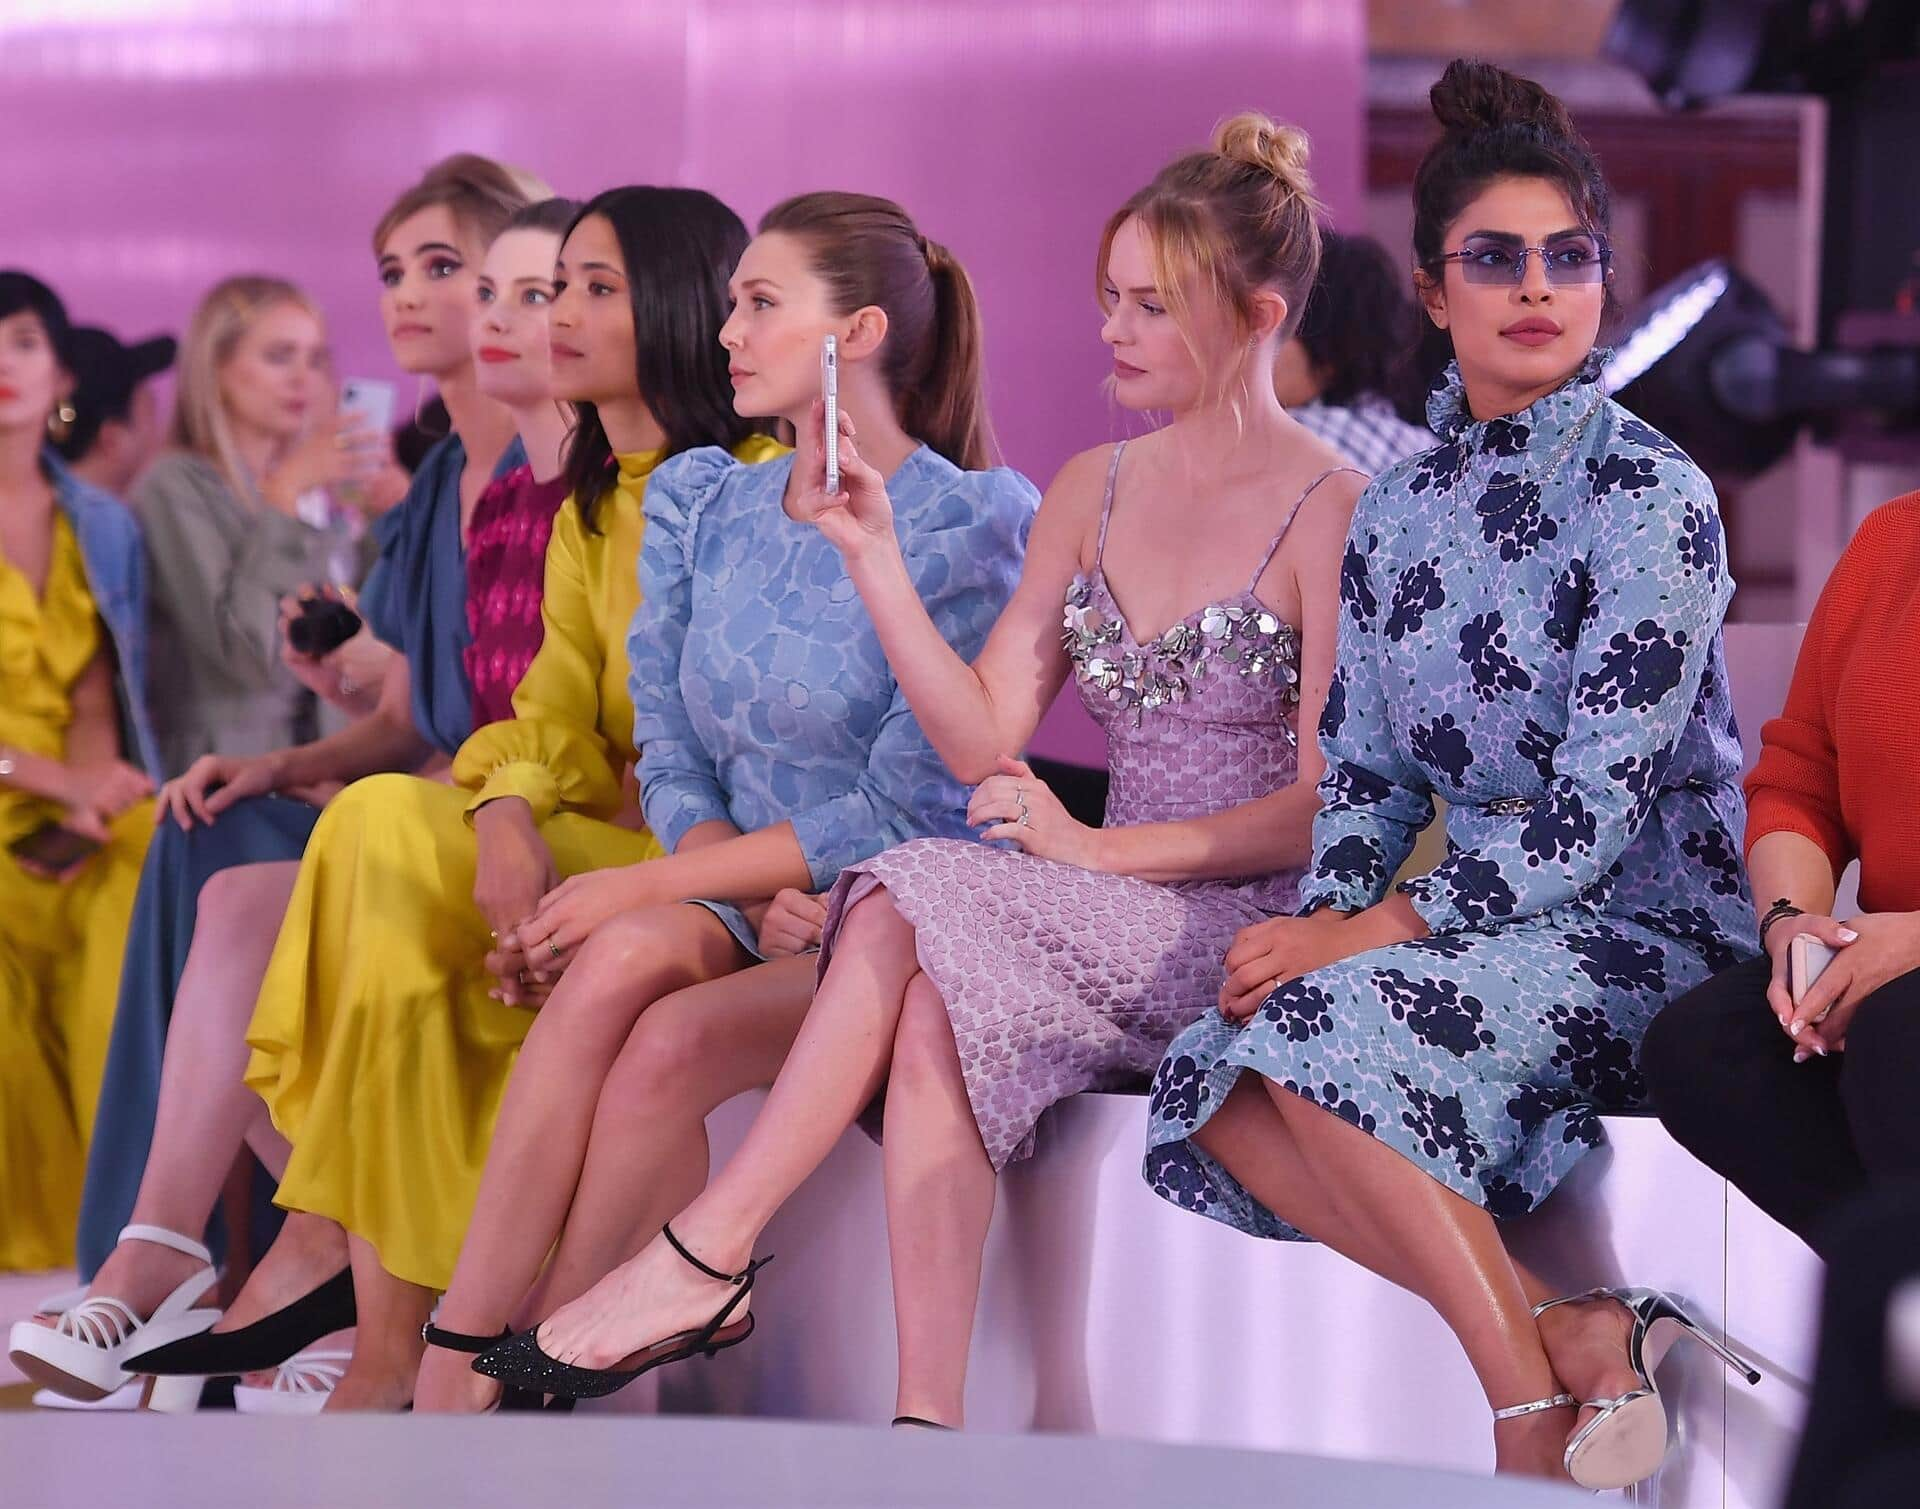 Throwback: NYFW, we take you back to when it all started